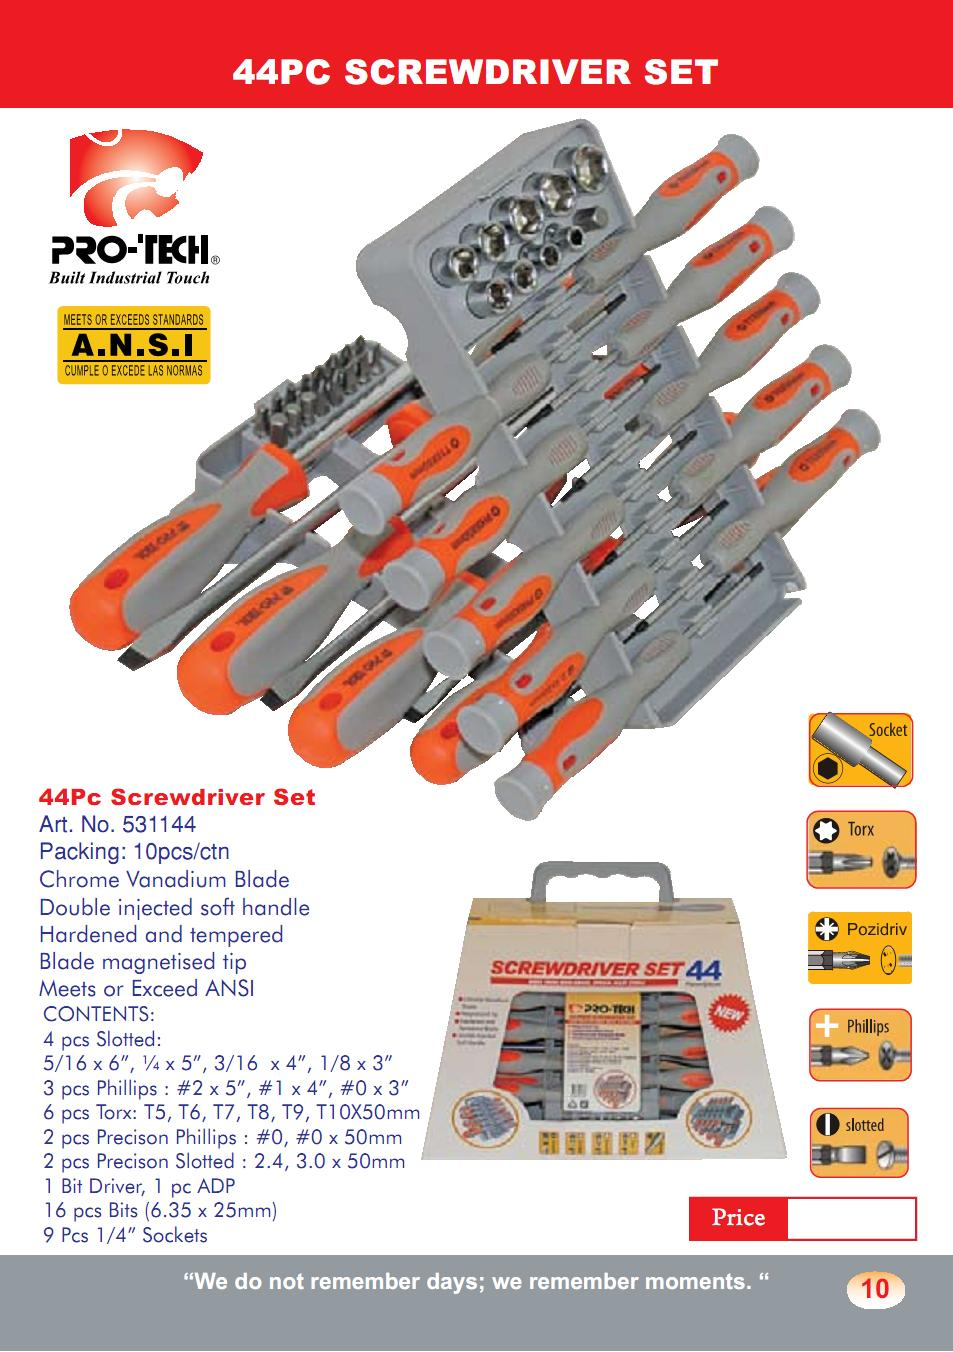 44 pc screw driver sets (SD8)